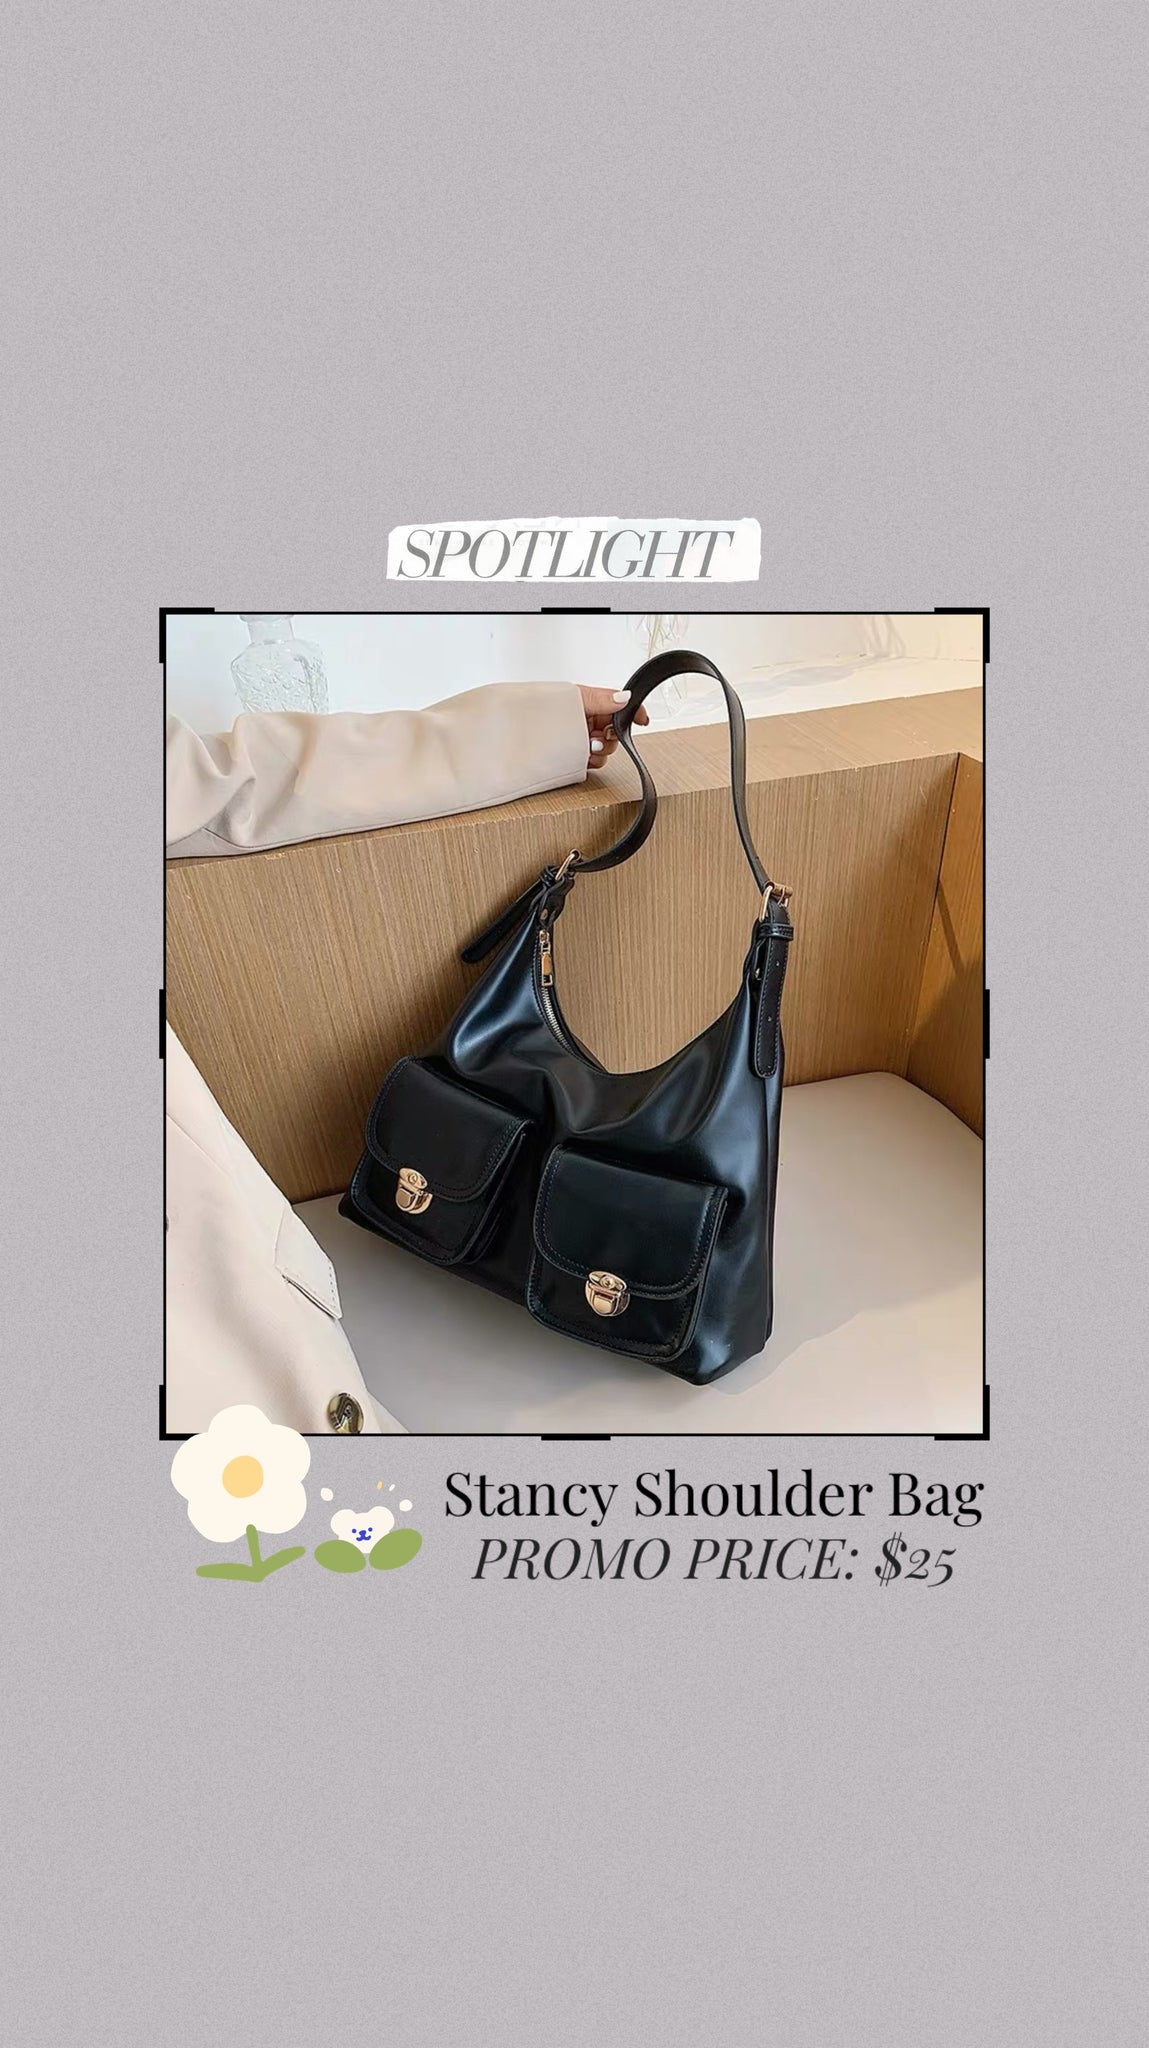 Stancy Shoulder Bag